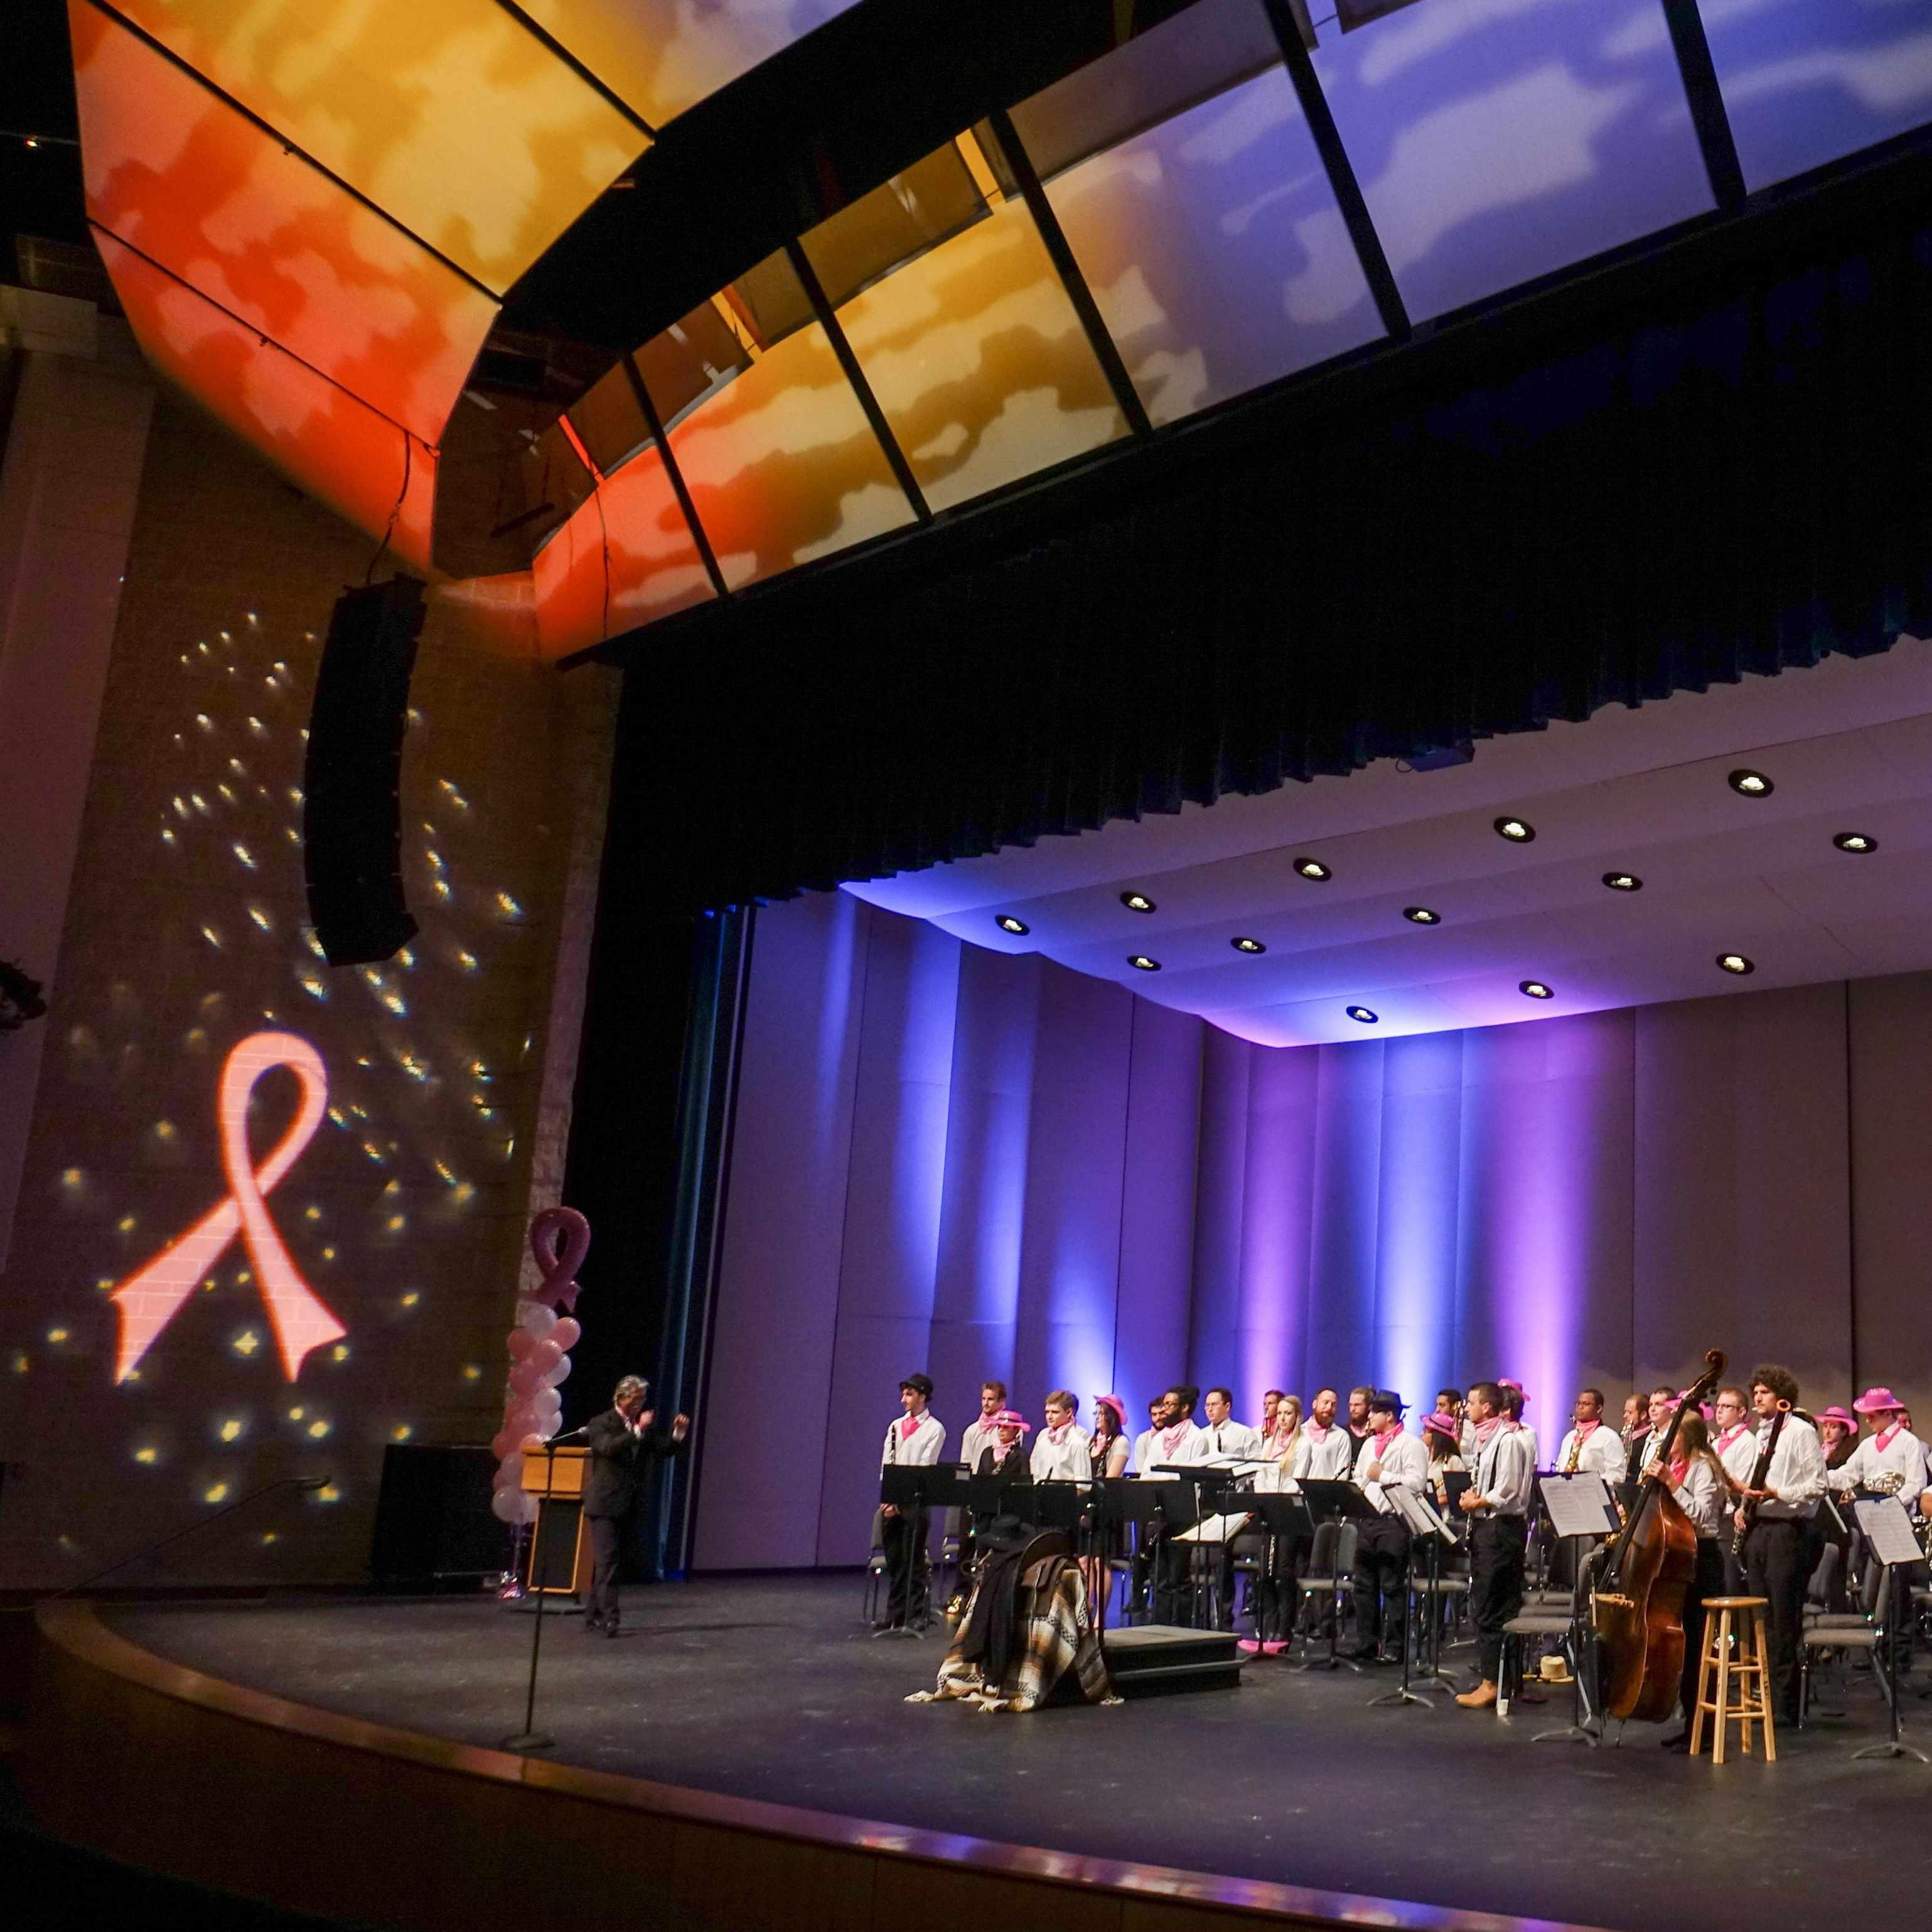 Performers on stage for a breast cancer awareness concert